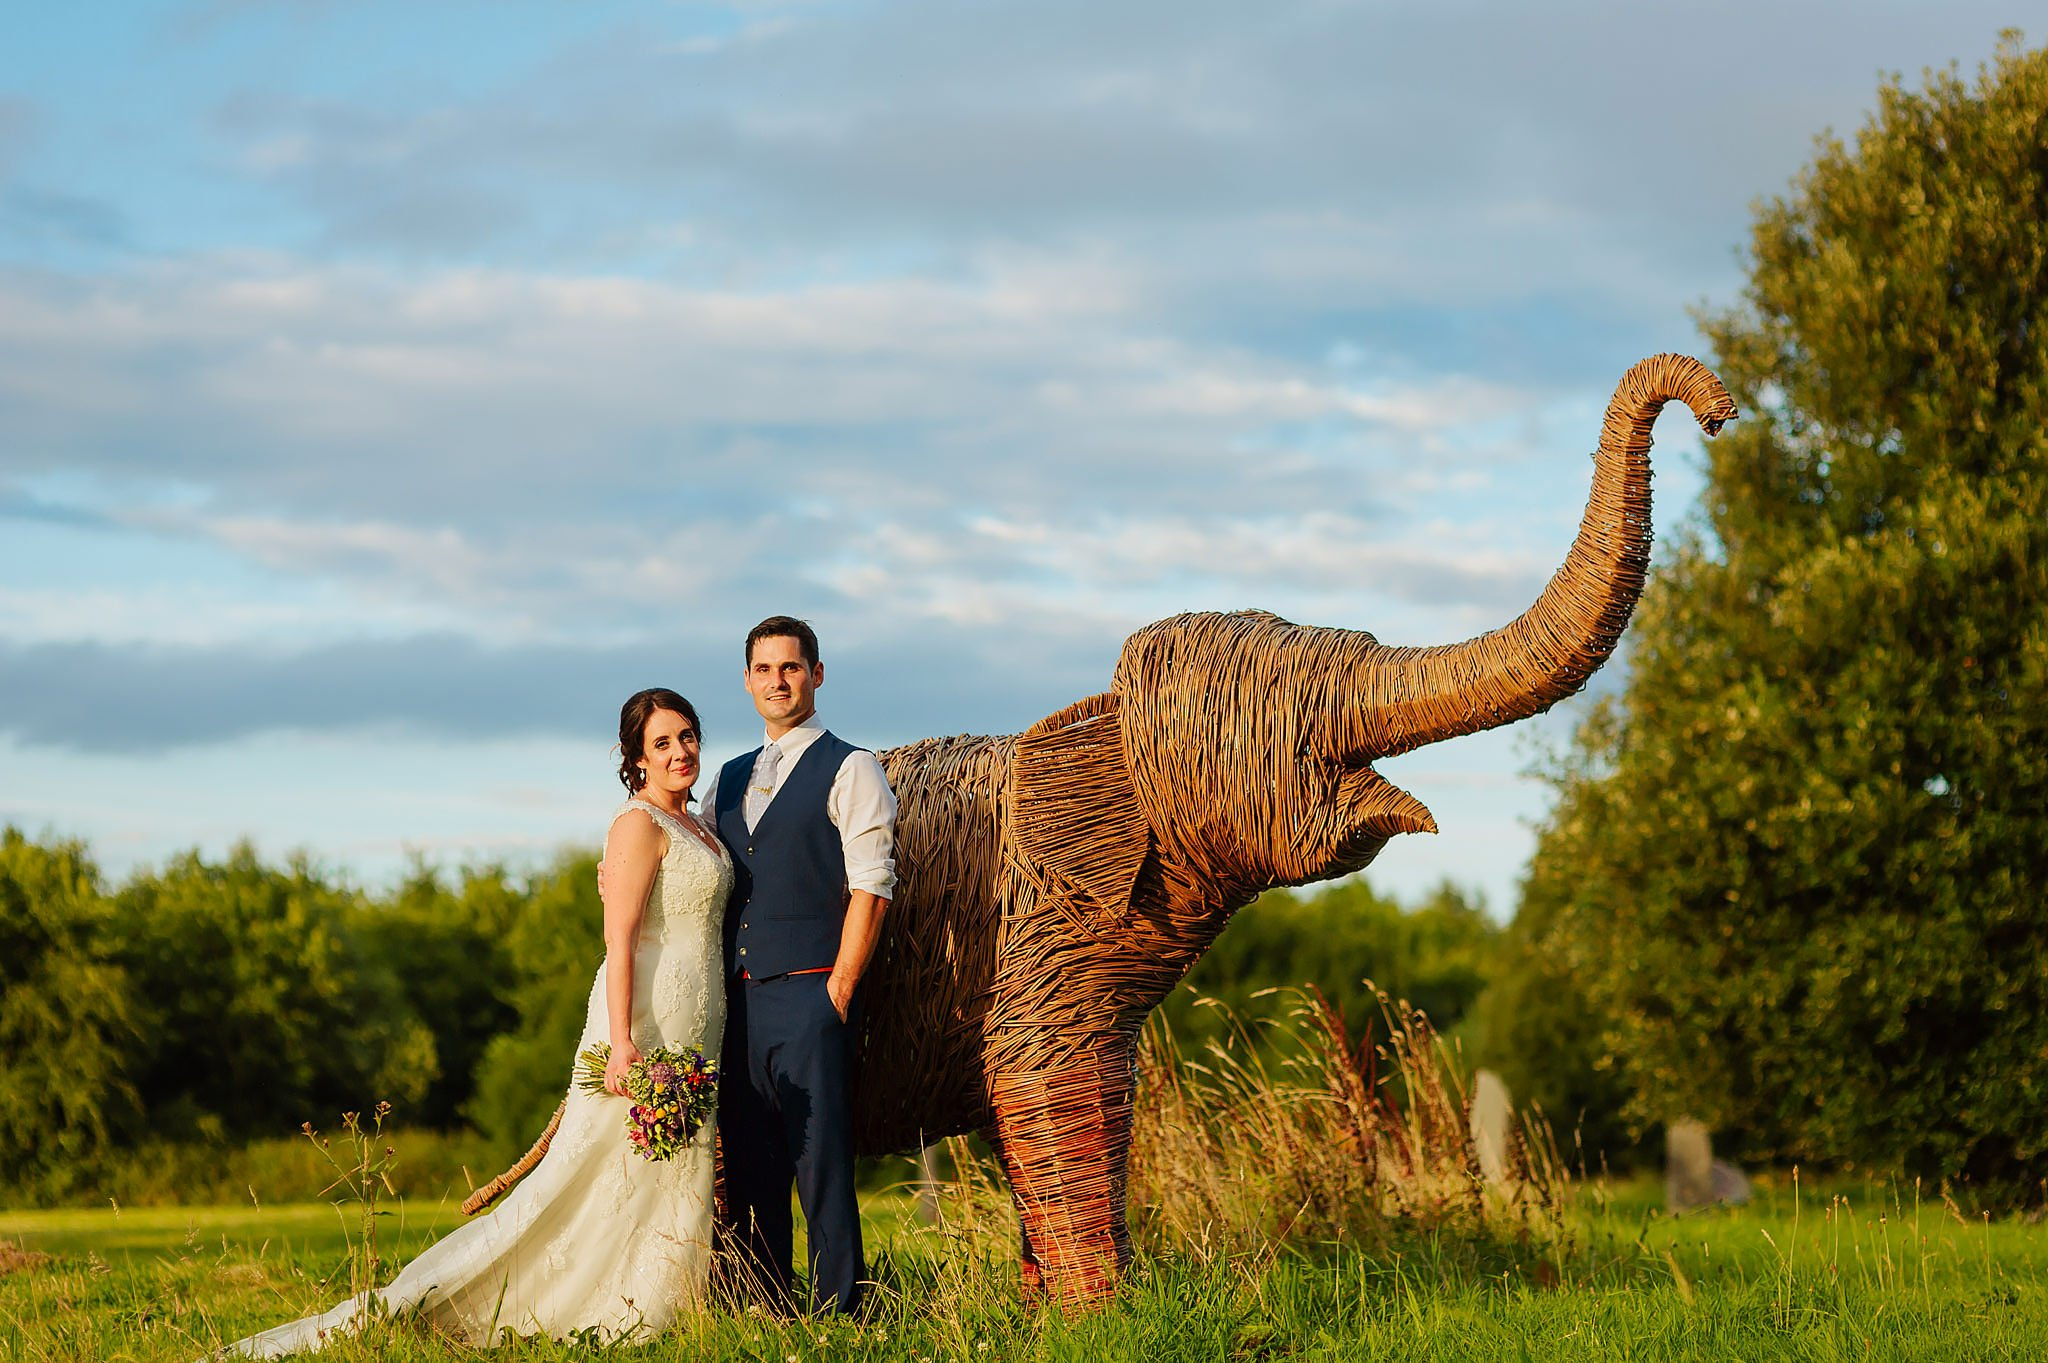 Wedding photography at Hellens Manor in Herefordshire, West Midlands | Shelley + Ian 123